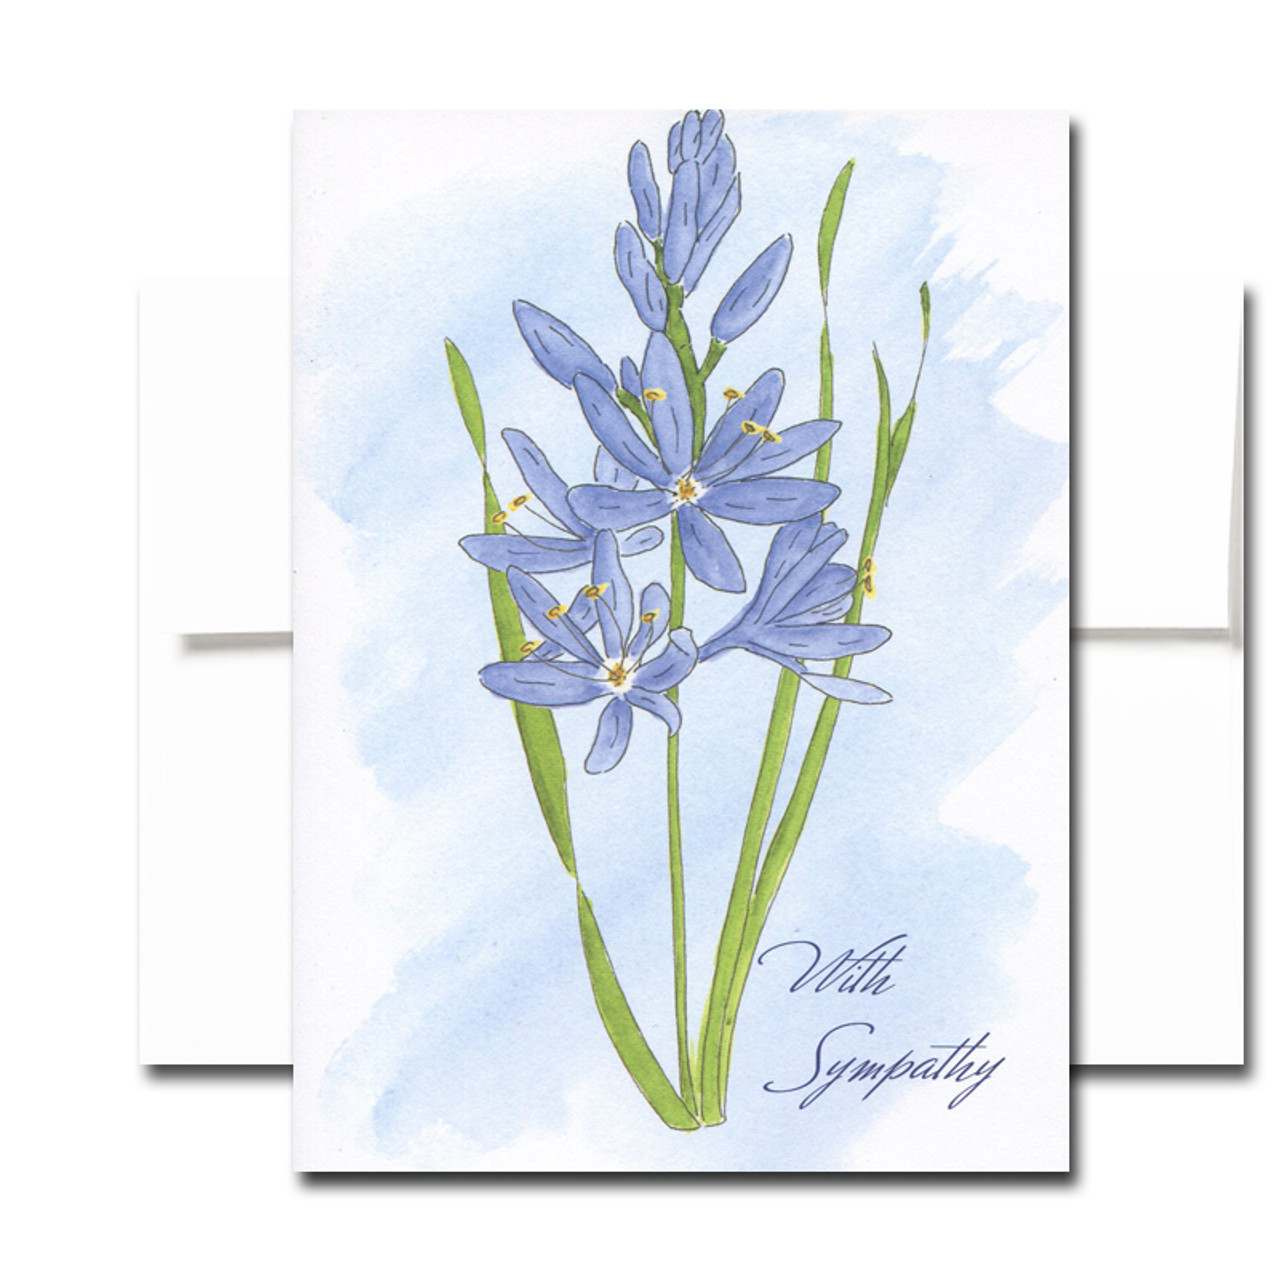 Sympathy Card: Wild Hyacinth. Cover has a hand-painted watercolor illustration of a wild hyacinth and the words With Sympathy